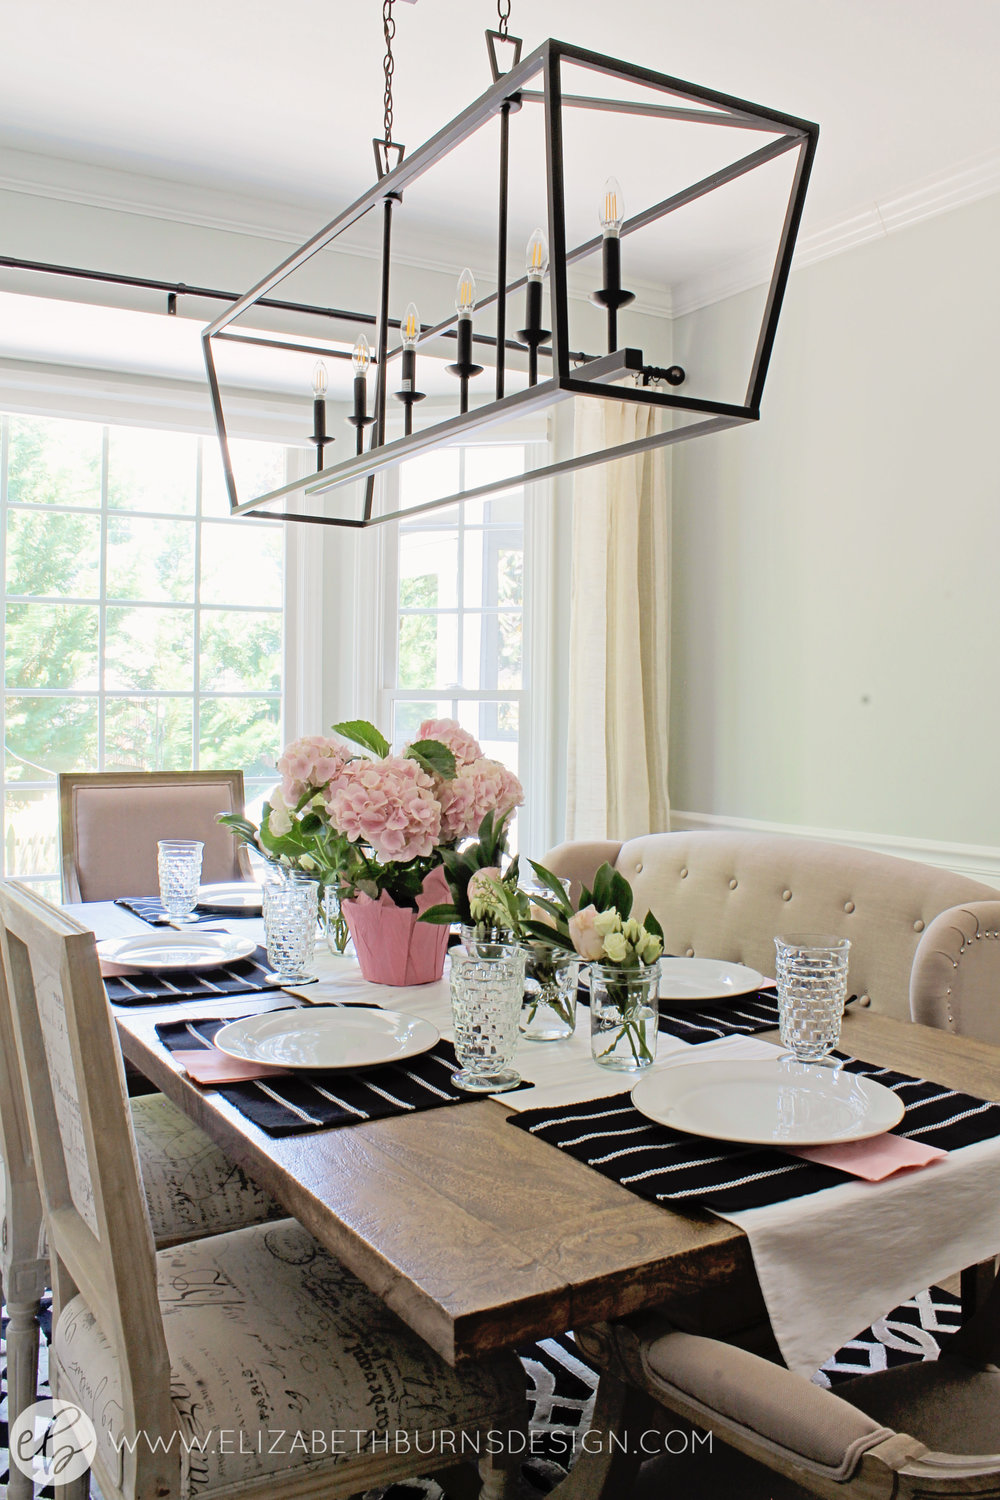 Elizabeth Burns Design - Budget Farmhouse Small Dining Room Sherwin Williams Silver Strand Trestle Table Linen Chairs DIY Wainscoting Dark Walnut Oak Floor (6).jpg